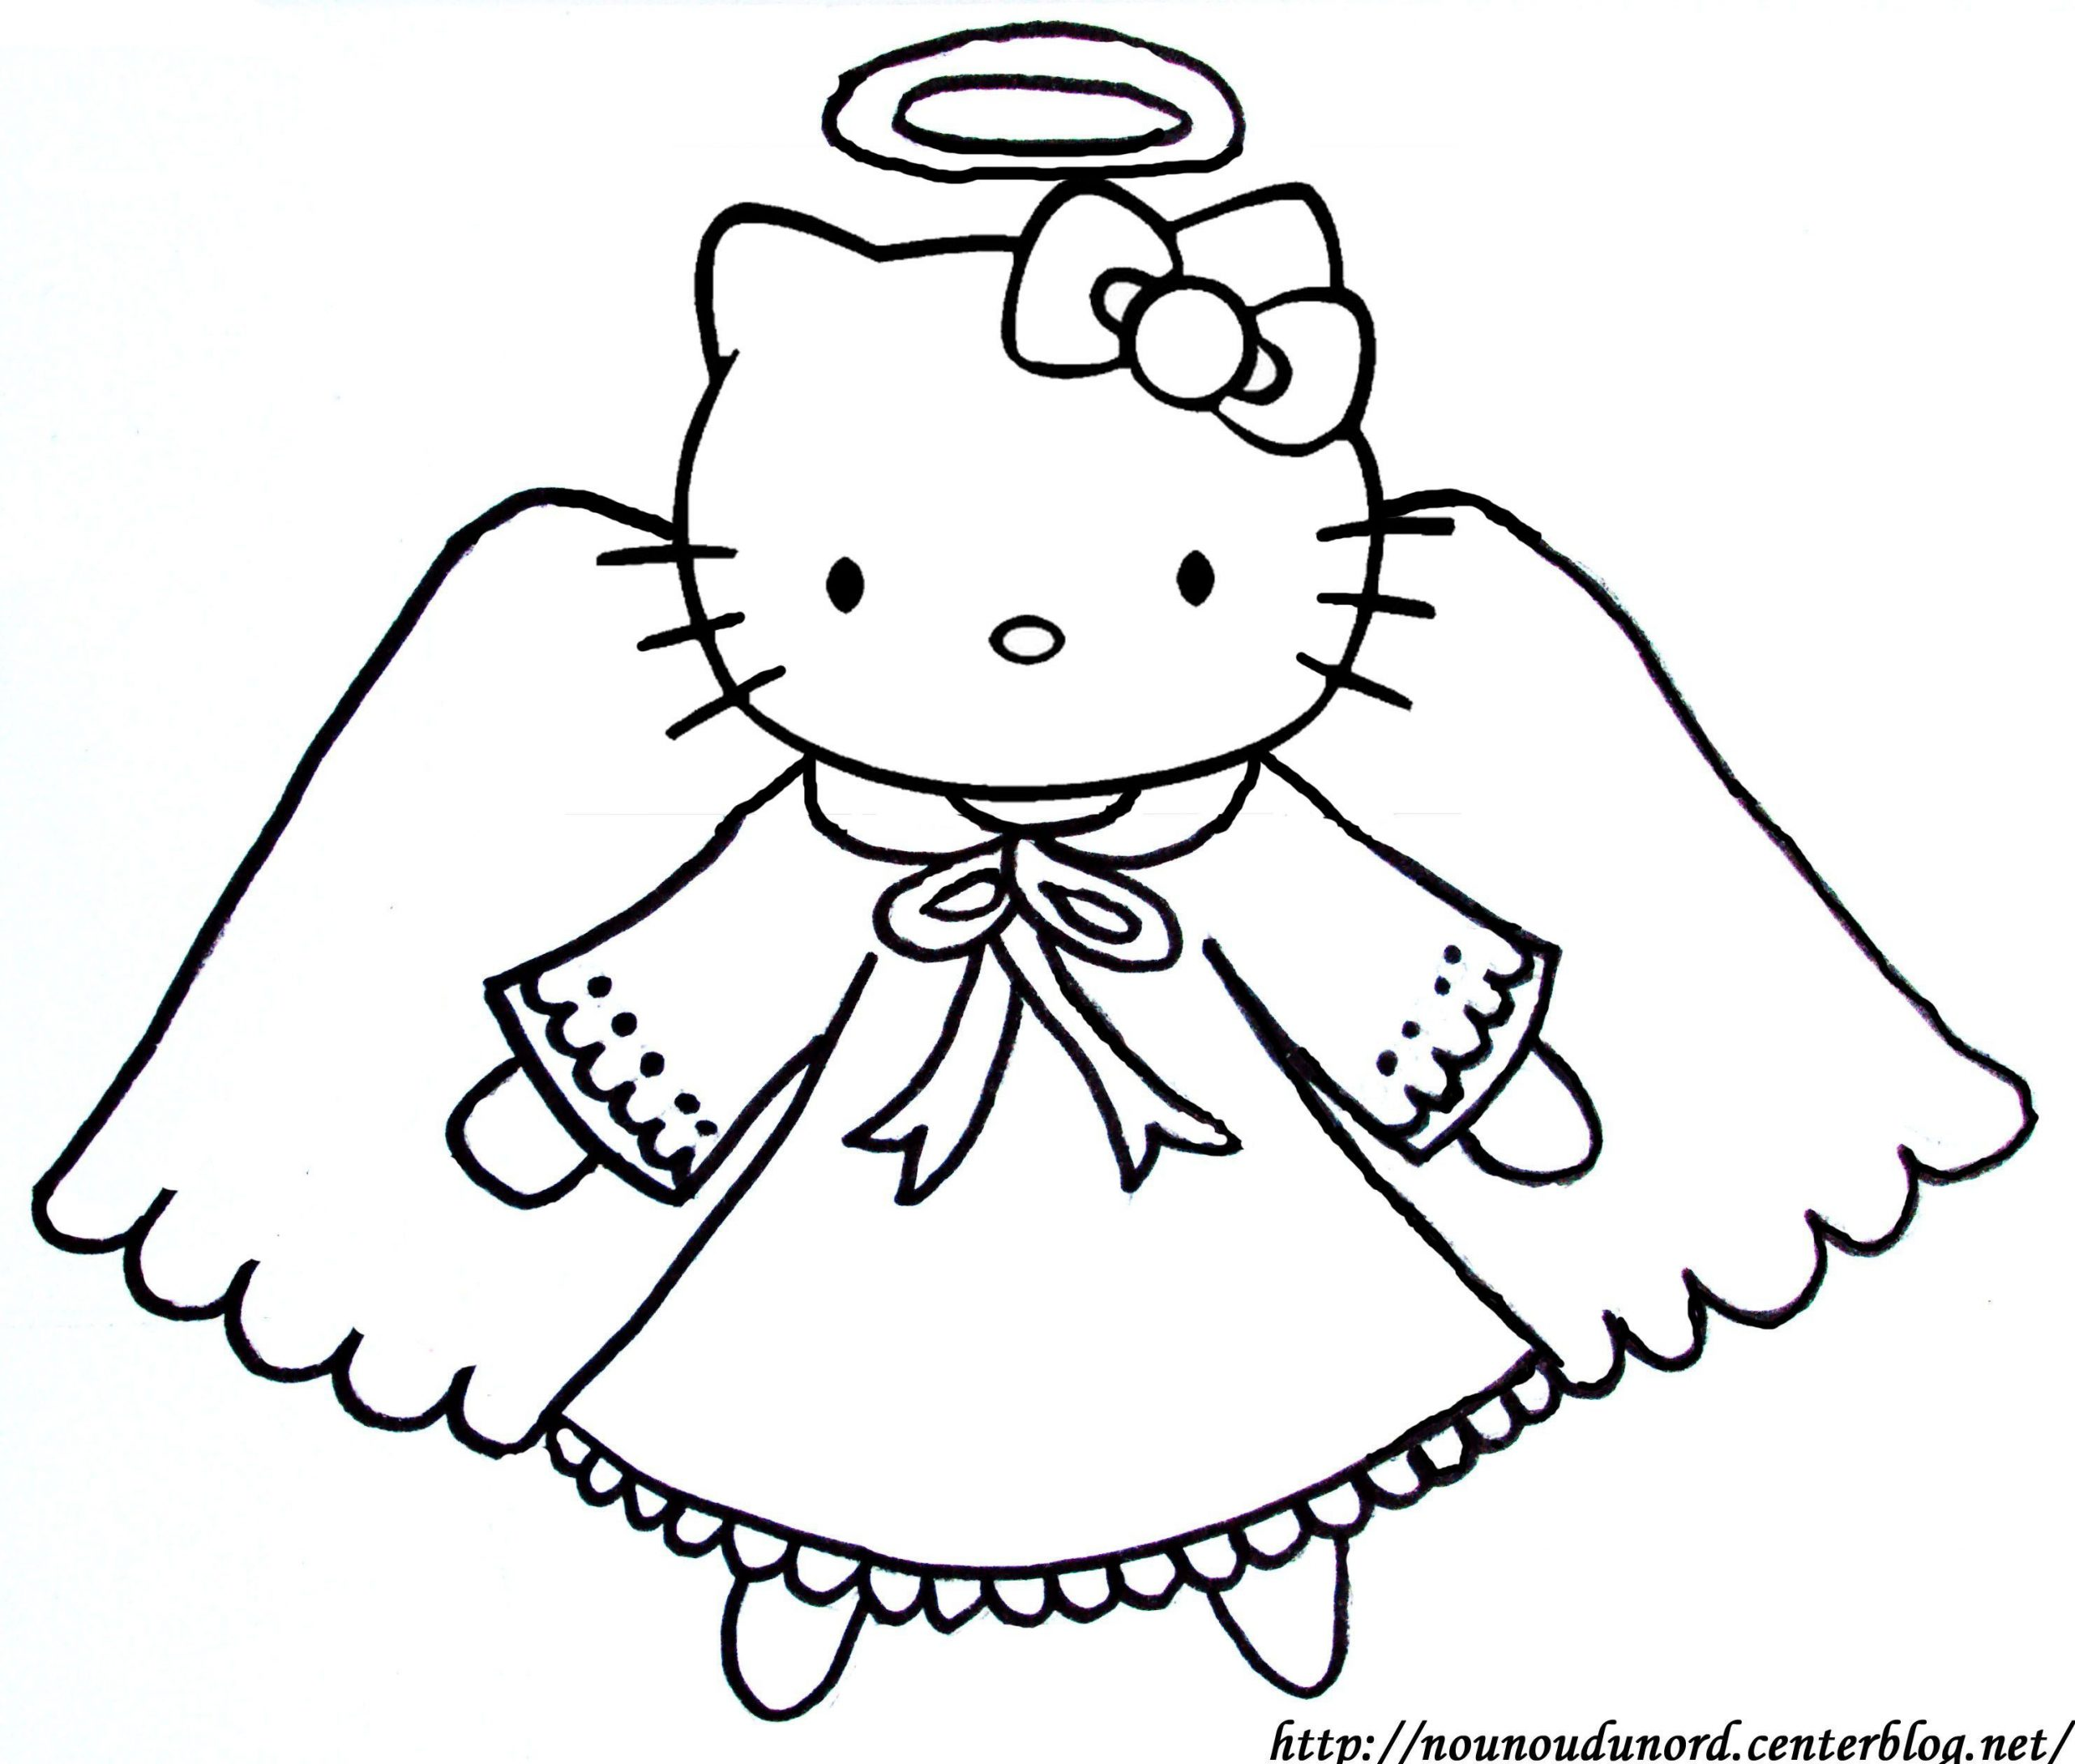 Coloriage Ange Hello Kitty concernant Ange A Colorier